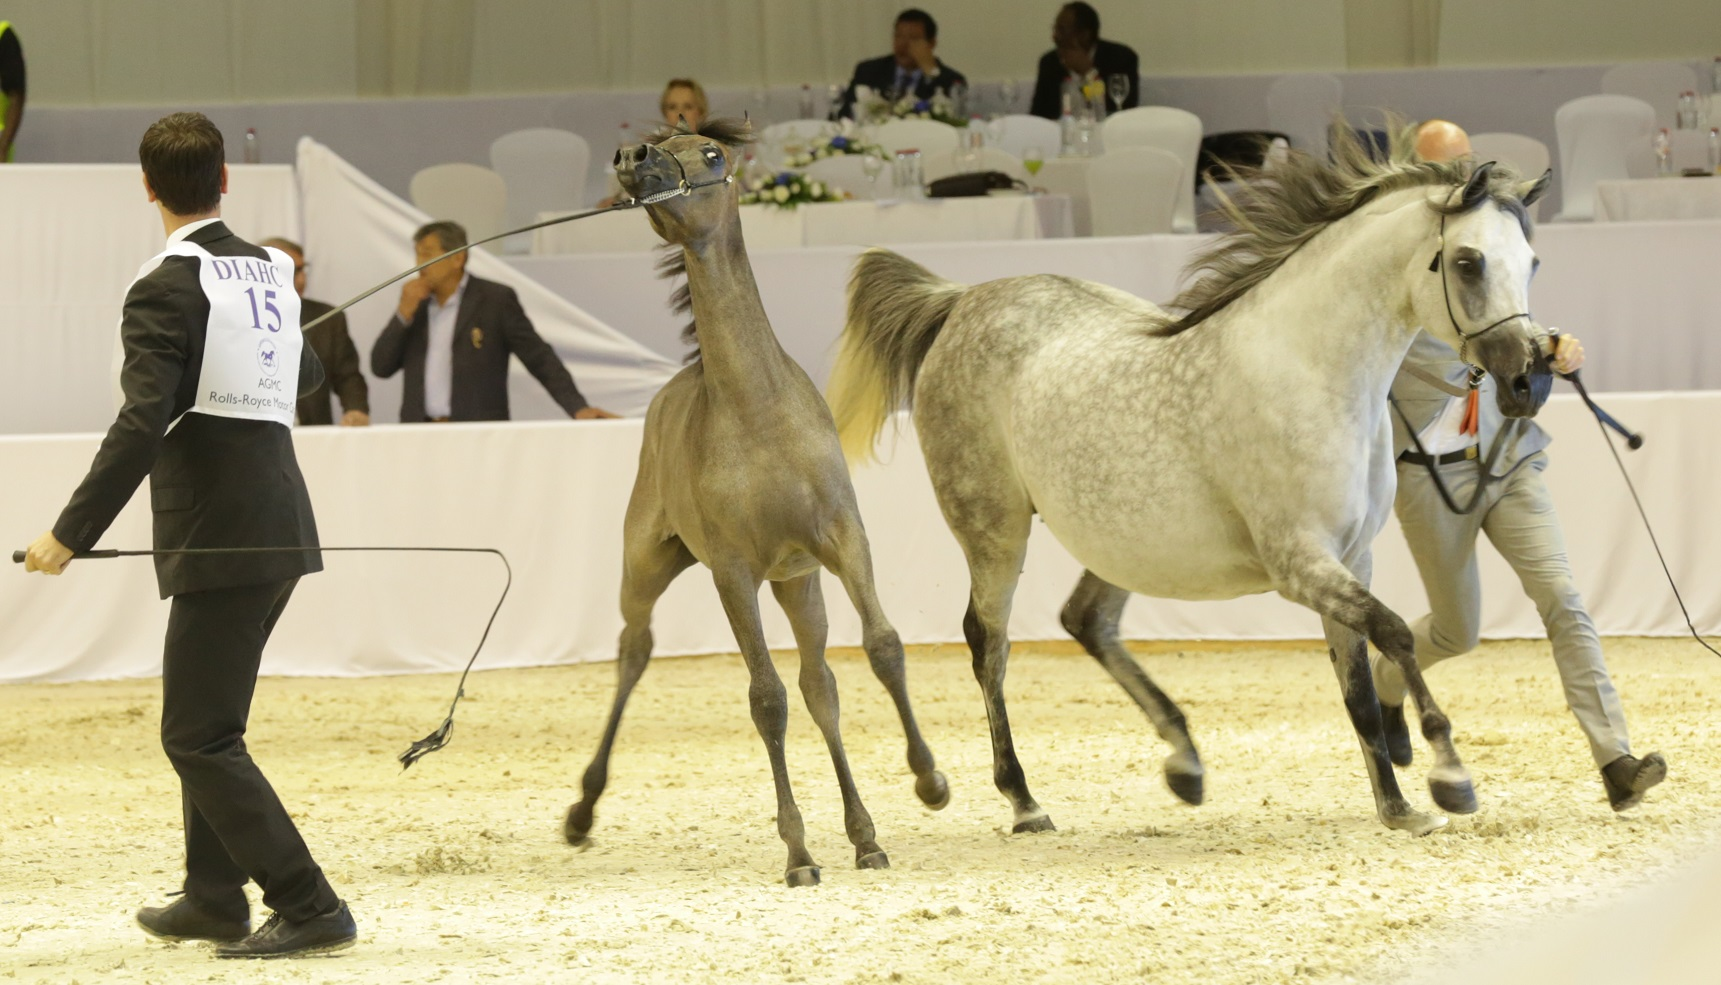 Horse Times Egypt: Equestrian Magazine :News :THE EQUESTRIAN WORLD RACES TO DUBAI WORLD TRADE CENTER THIS MARCH